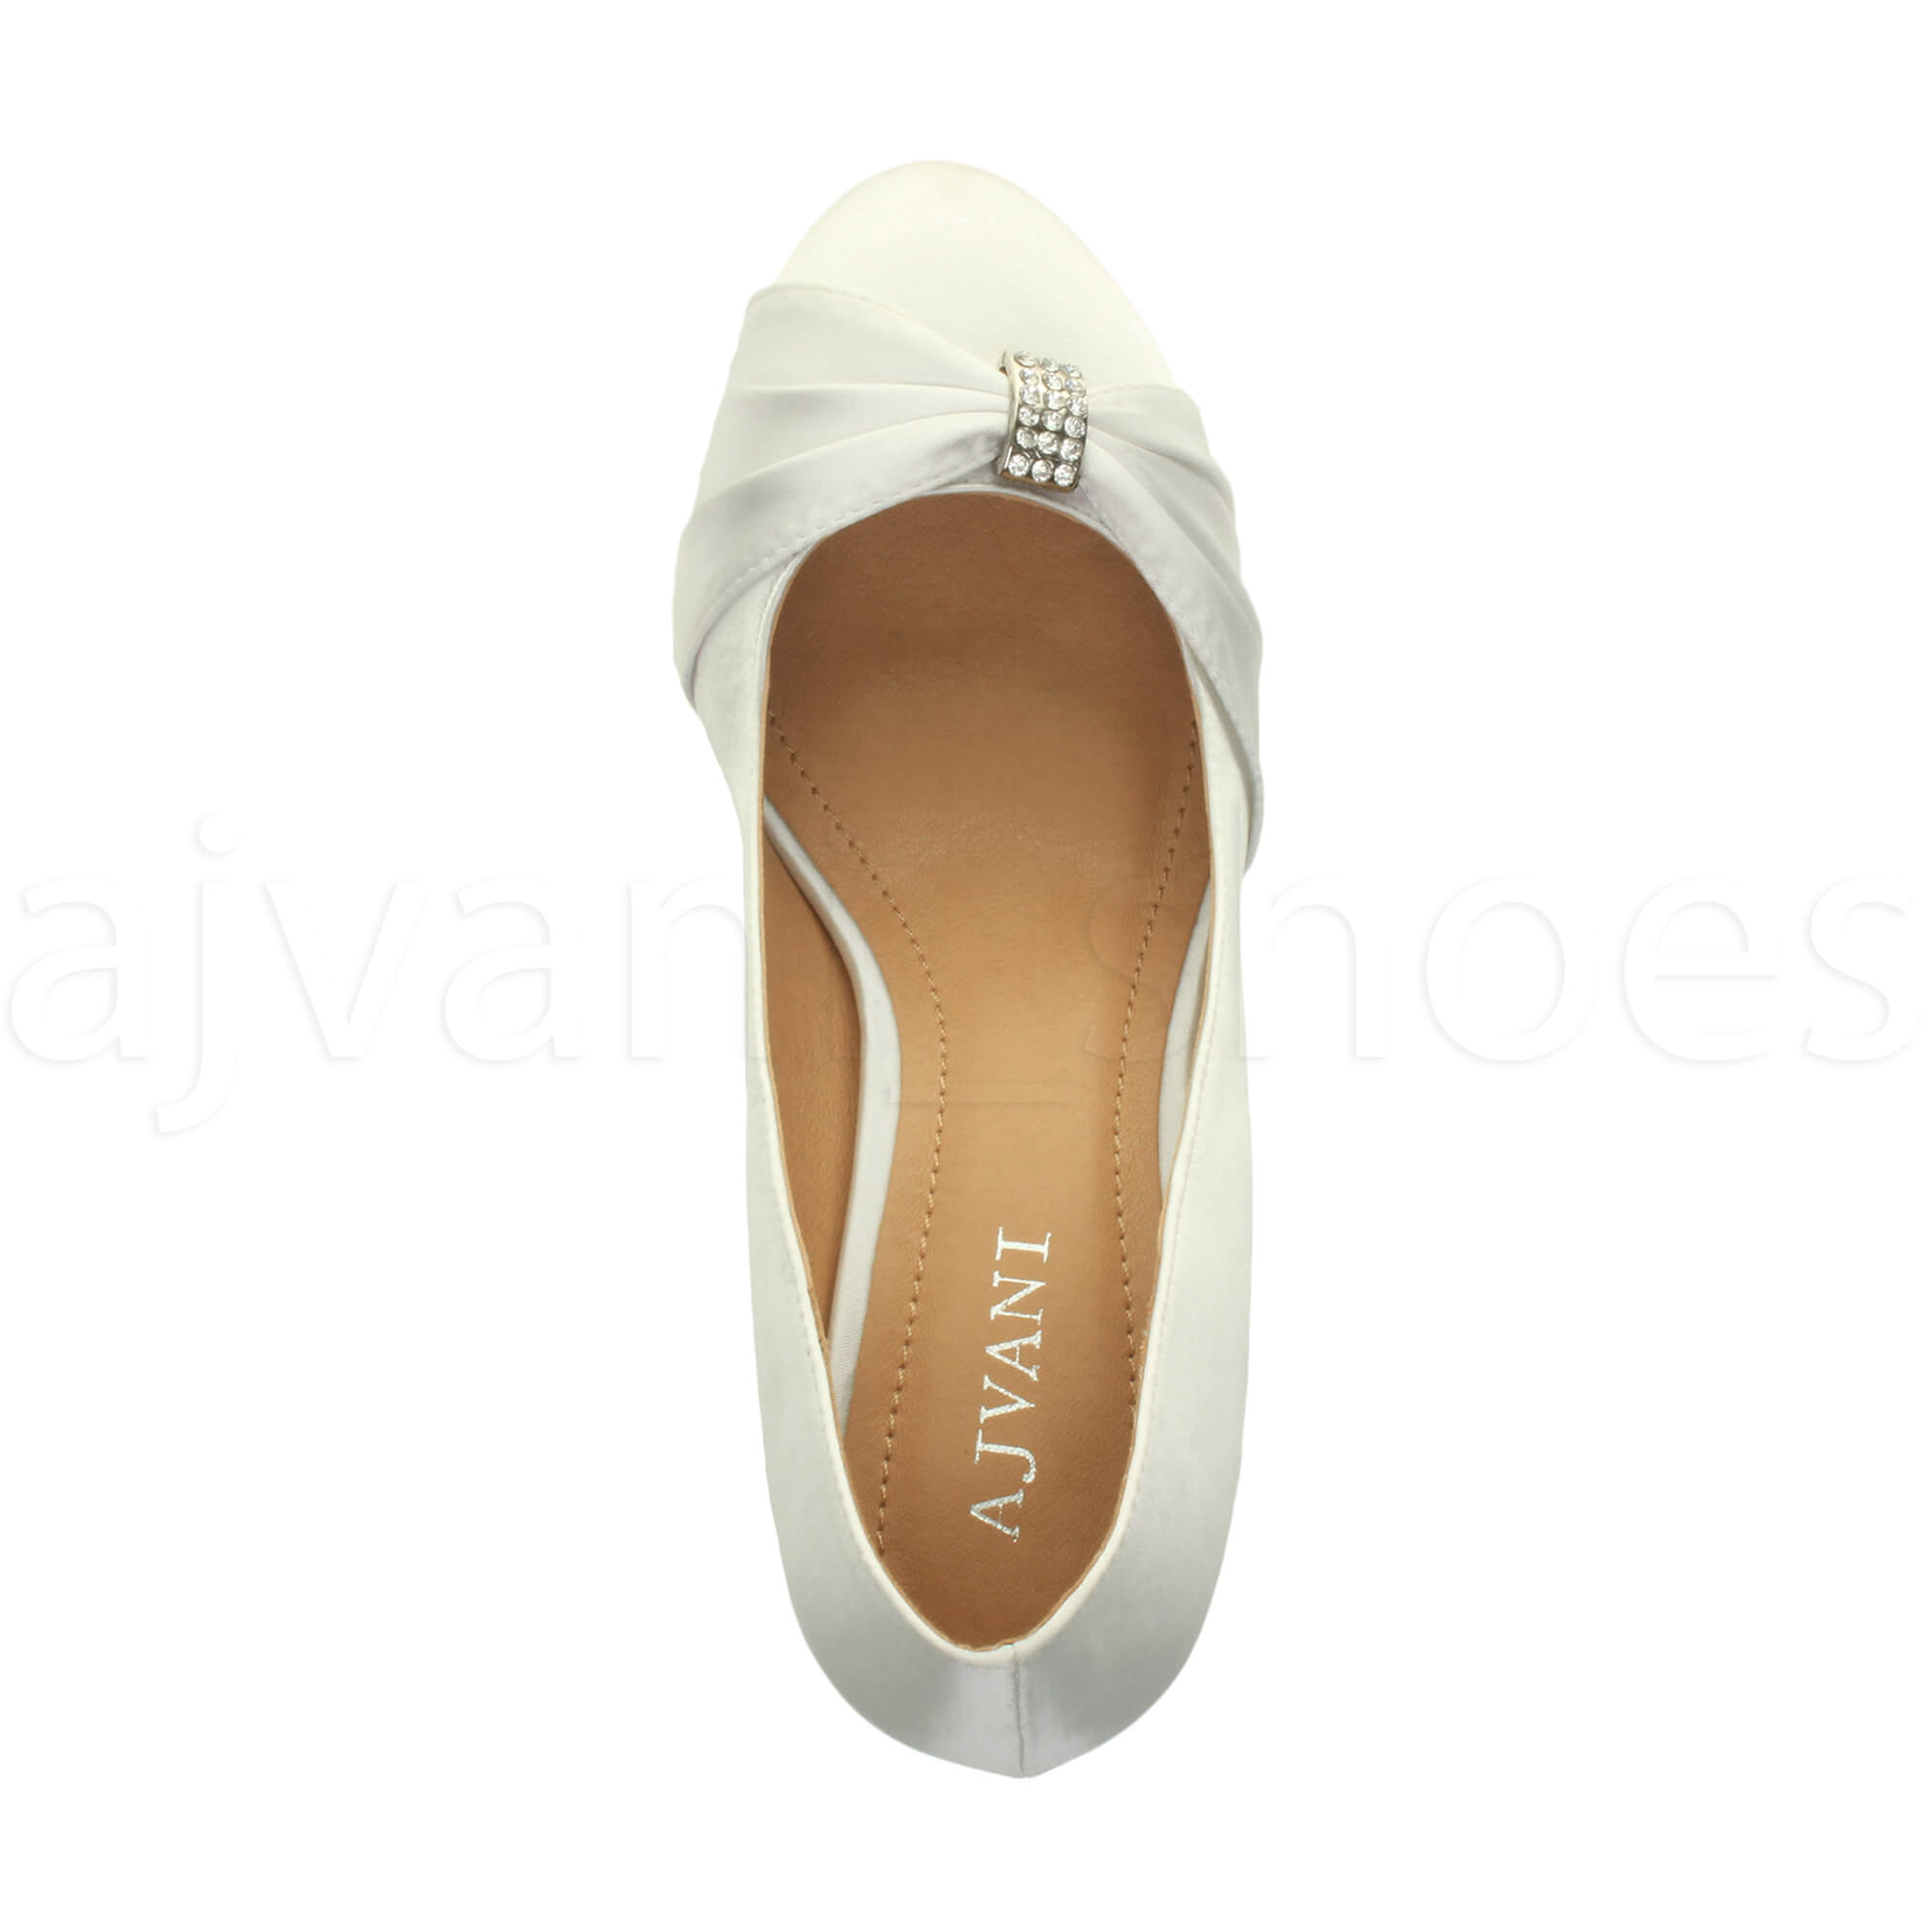 WOMENS-LADIES-MID-HEEL-RUCHED-DIAMANTE-WEDDING-PROM-EVENING-COURT-SHOES-SIZE thumbnail 112